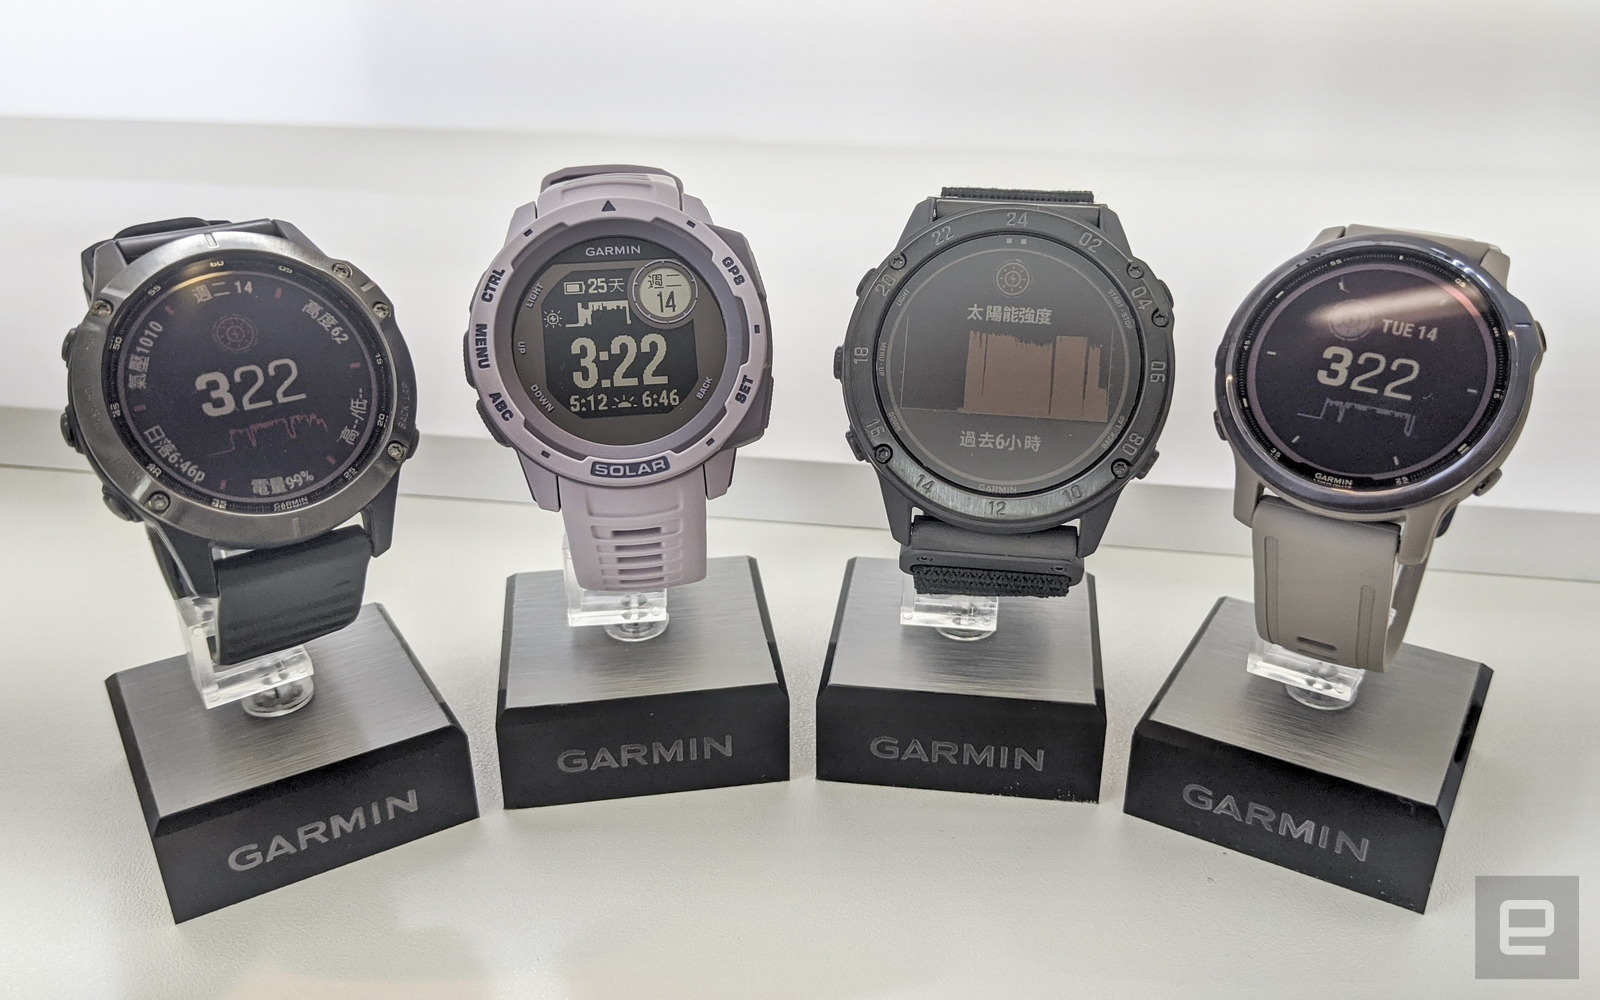 Garmin Solar Watch